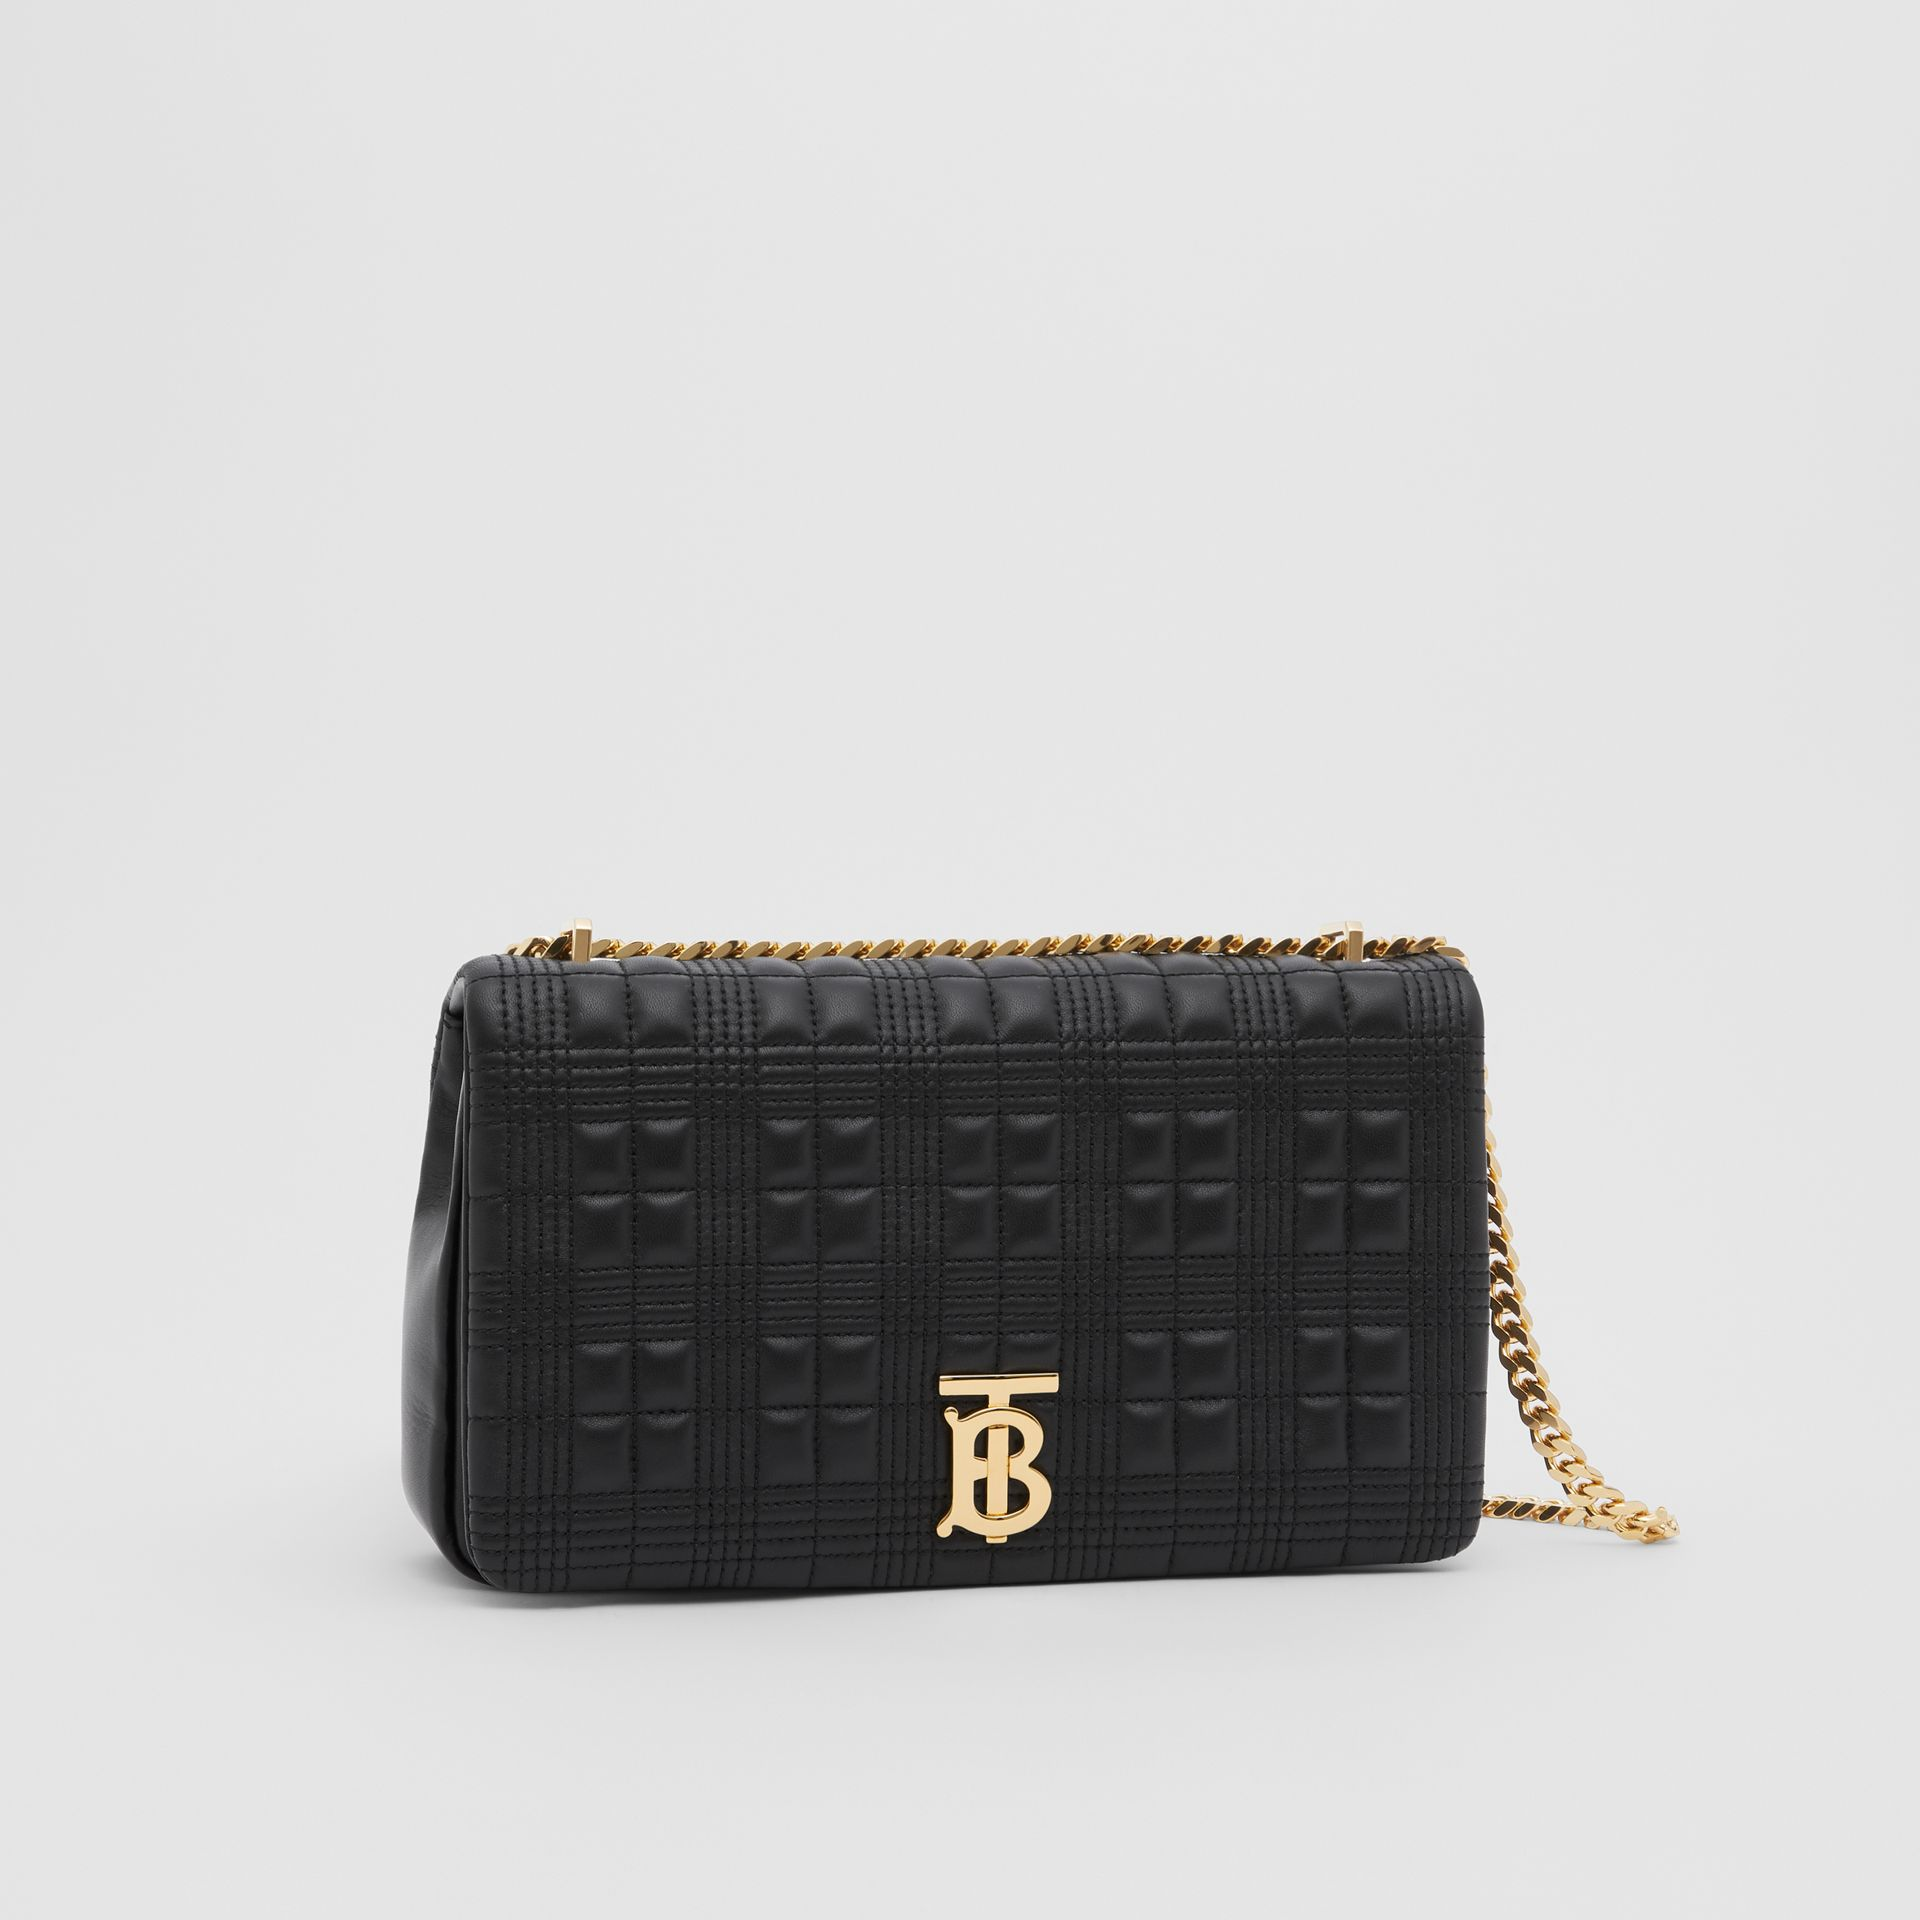 Medium Quilted Check Lambskin Lola Bag in Black - Women | Burberry Canada - gallery image 4